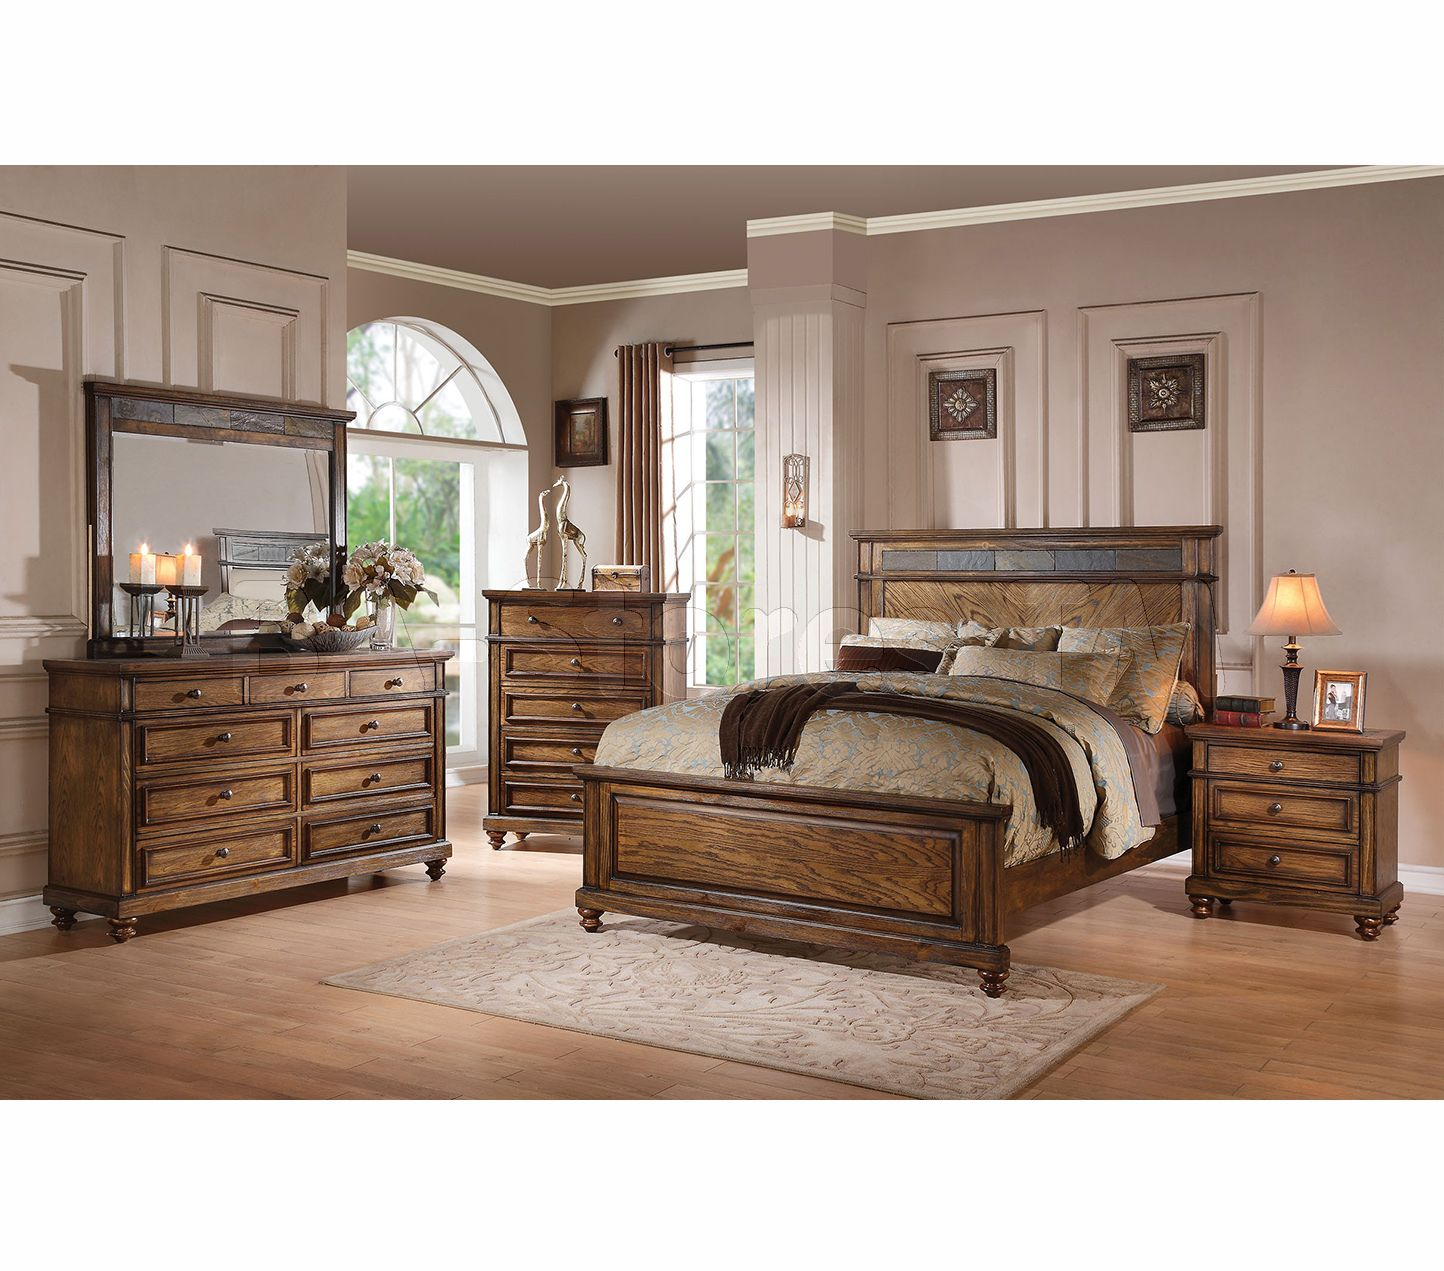 acme furniture bedroom sets. Arielle Bedroom Set by Acme Furniture  Sets